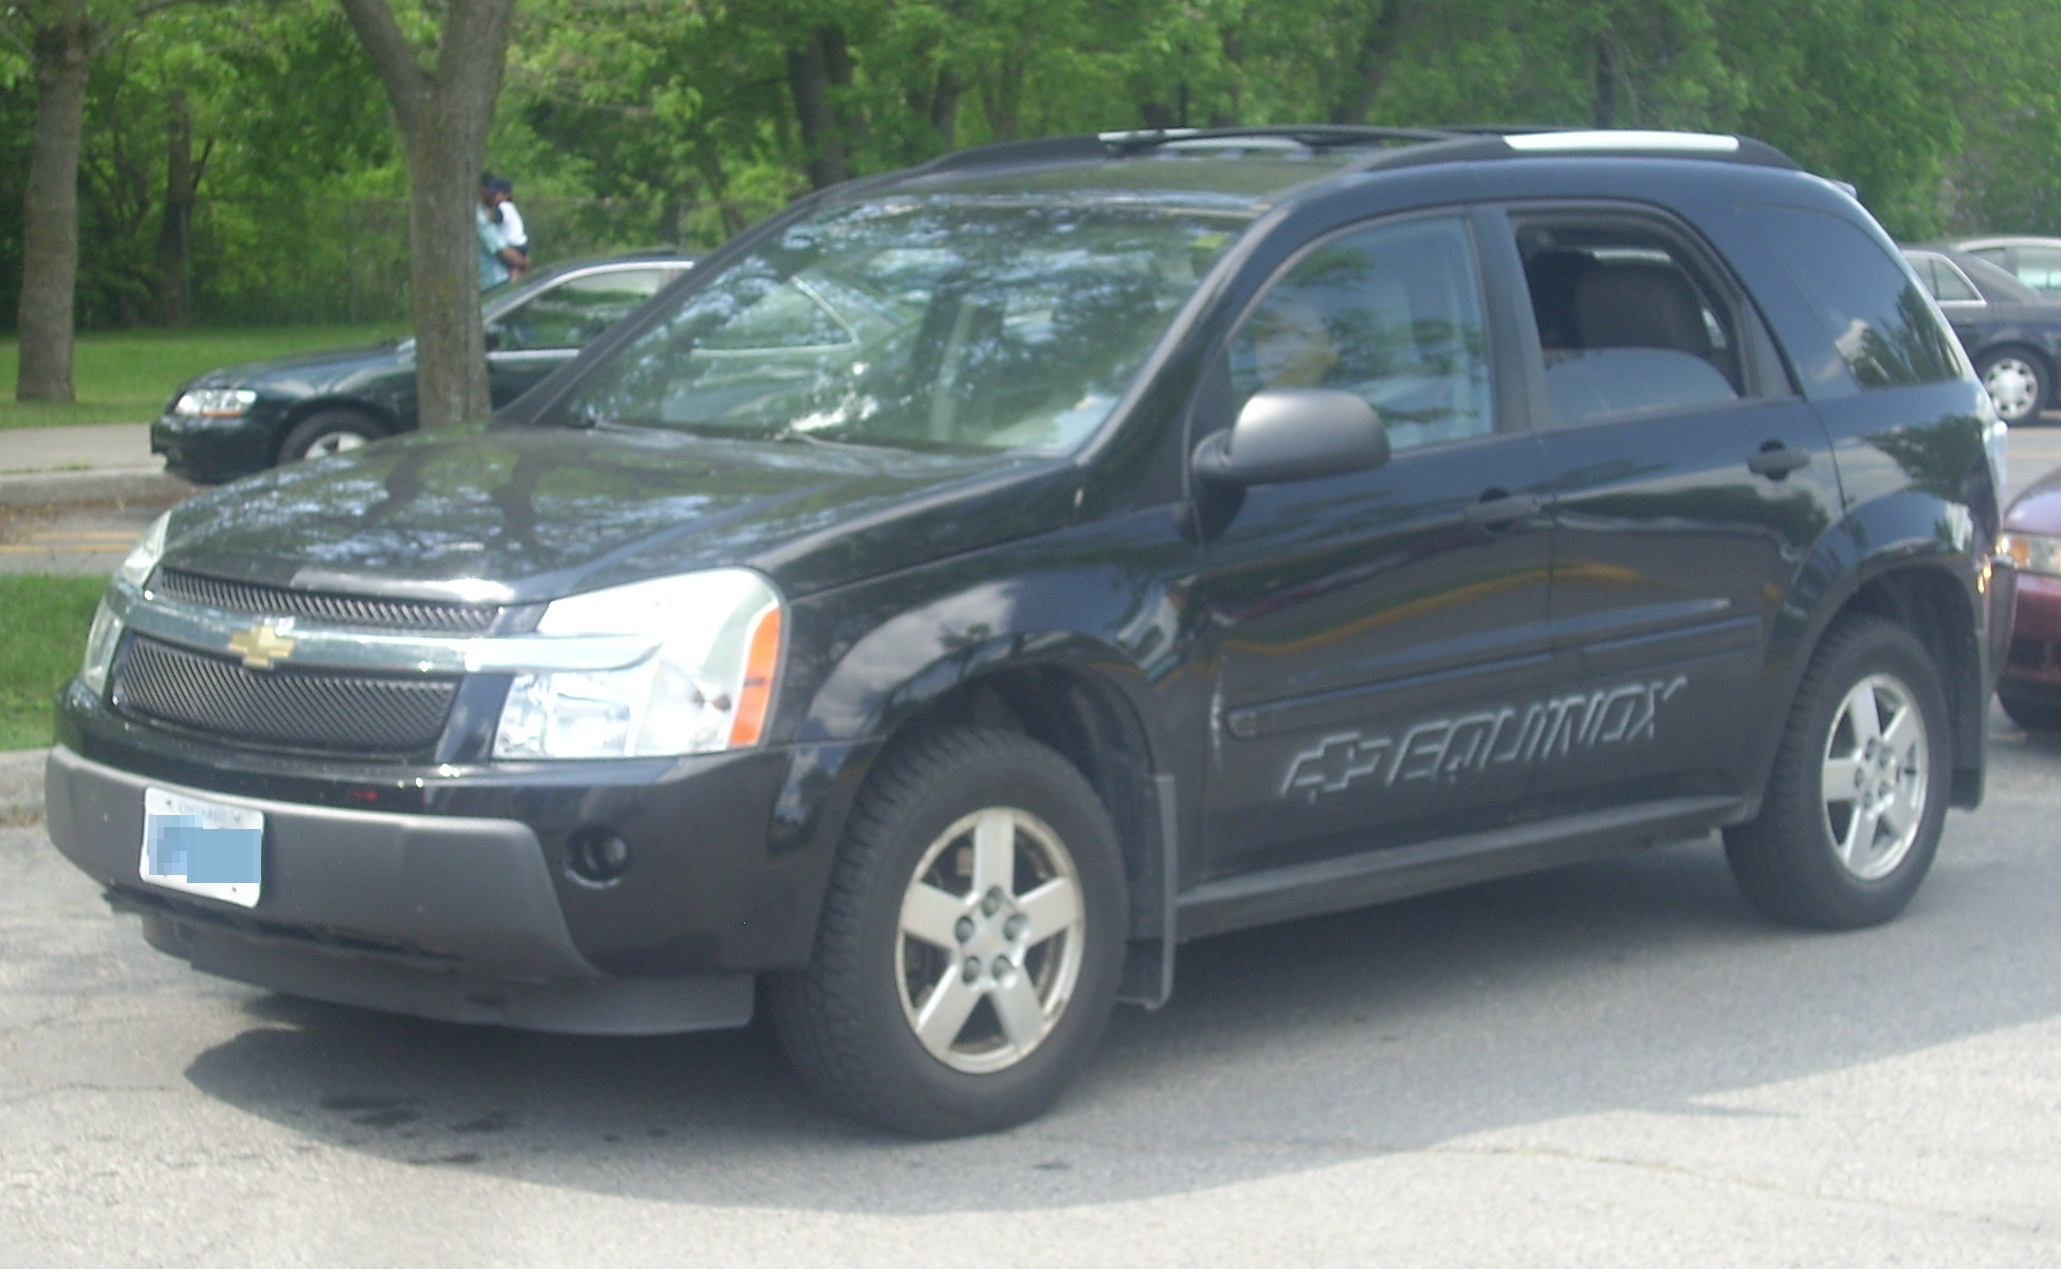 file:2005 chevrolet equinox ls - wikimedia commons